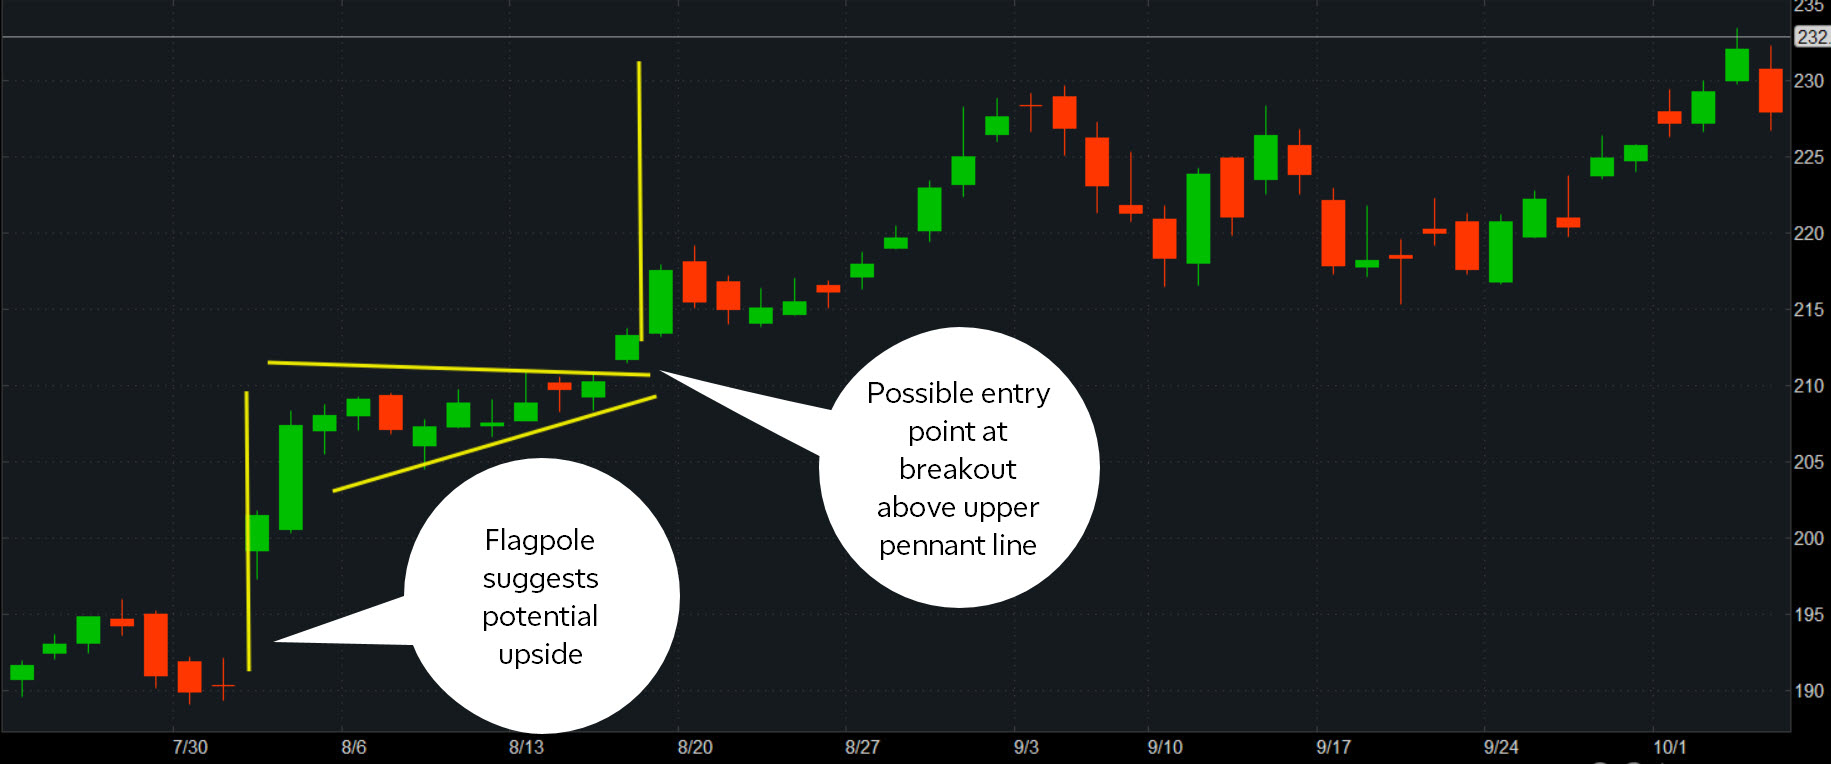 Stock charts: flagpole and breakout above support